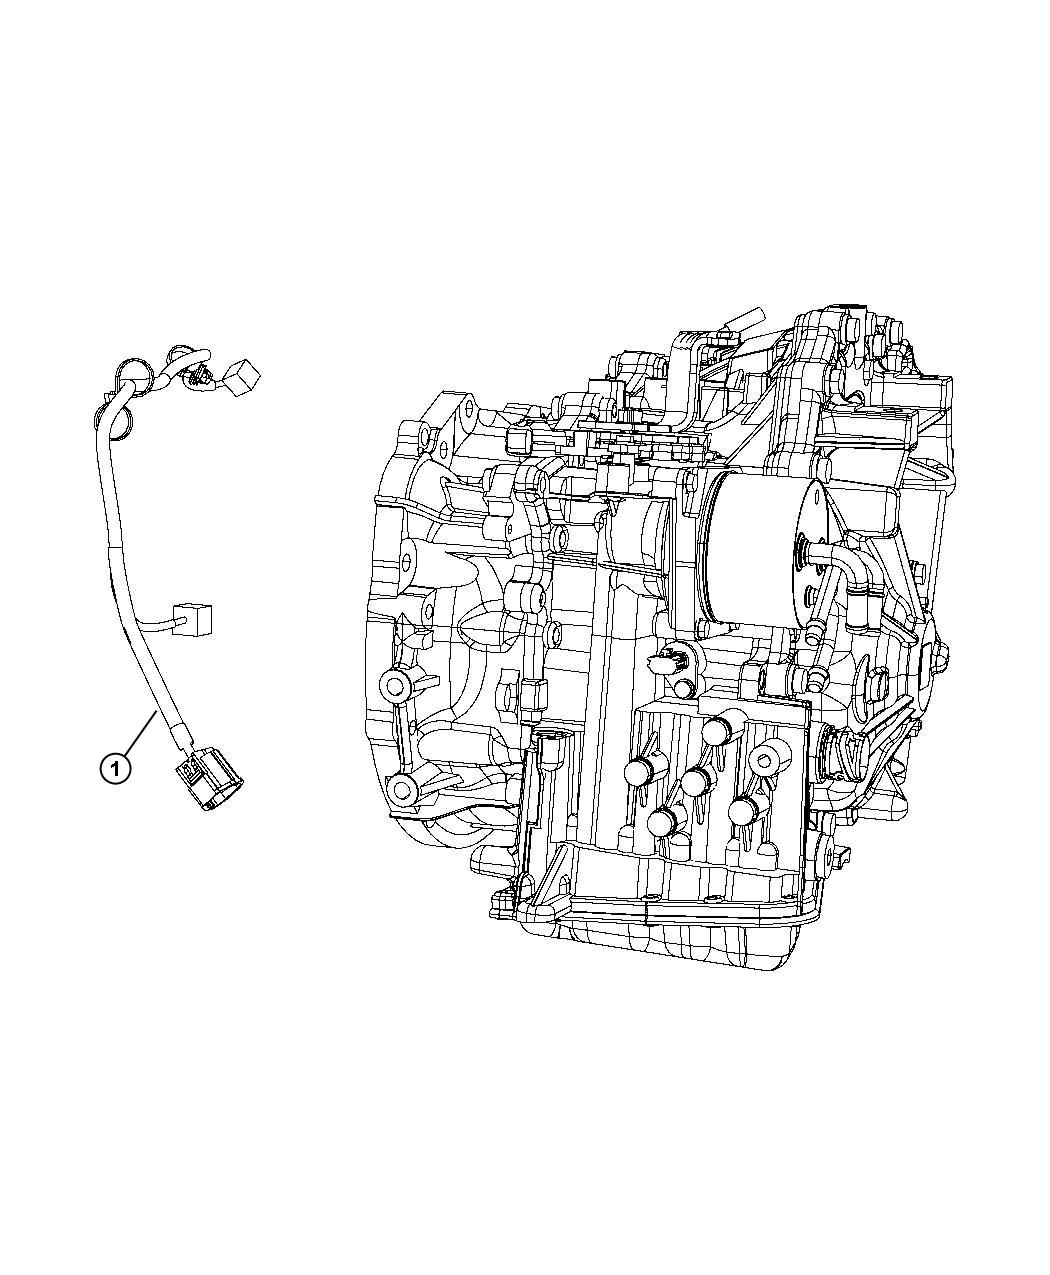 Dodge Caliber Wiring. Transmission. [power train parts